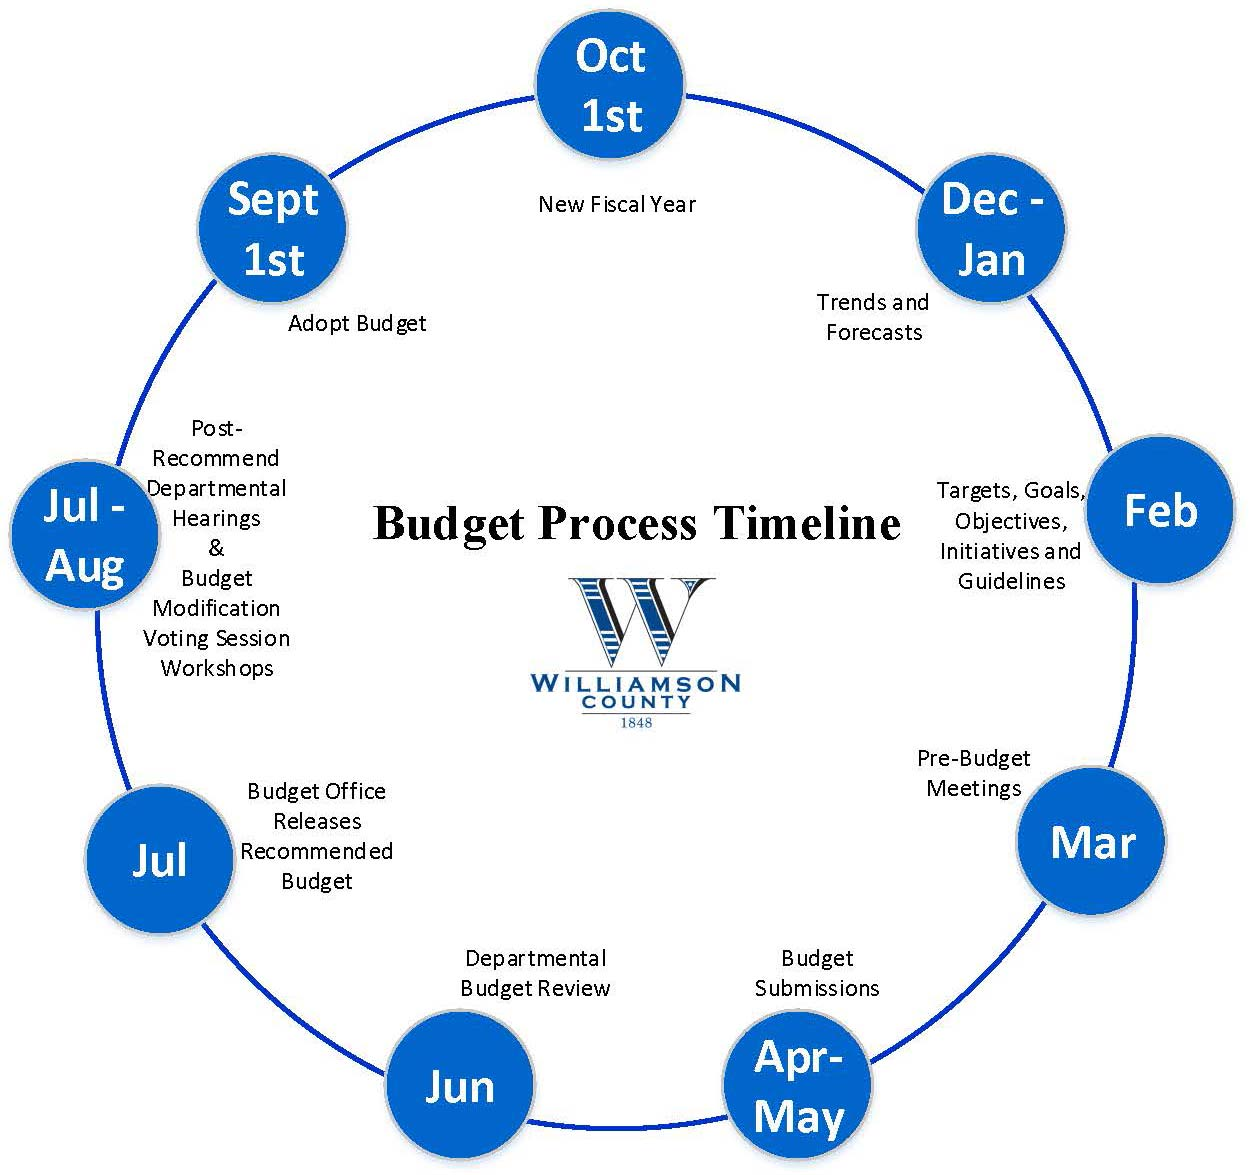 Budget Process Timeline, click the image to download a PDF